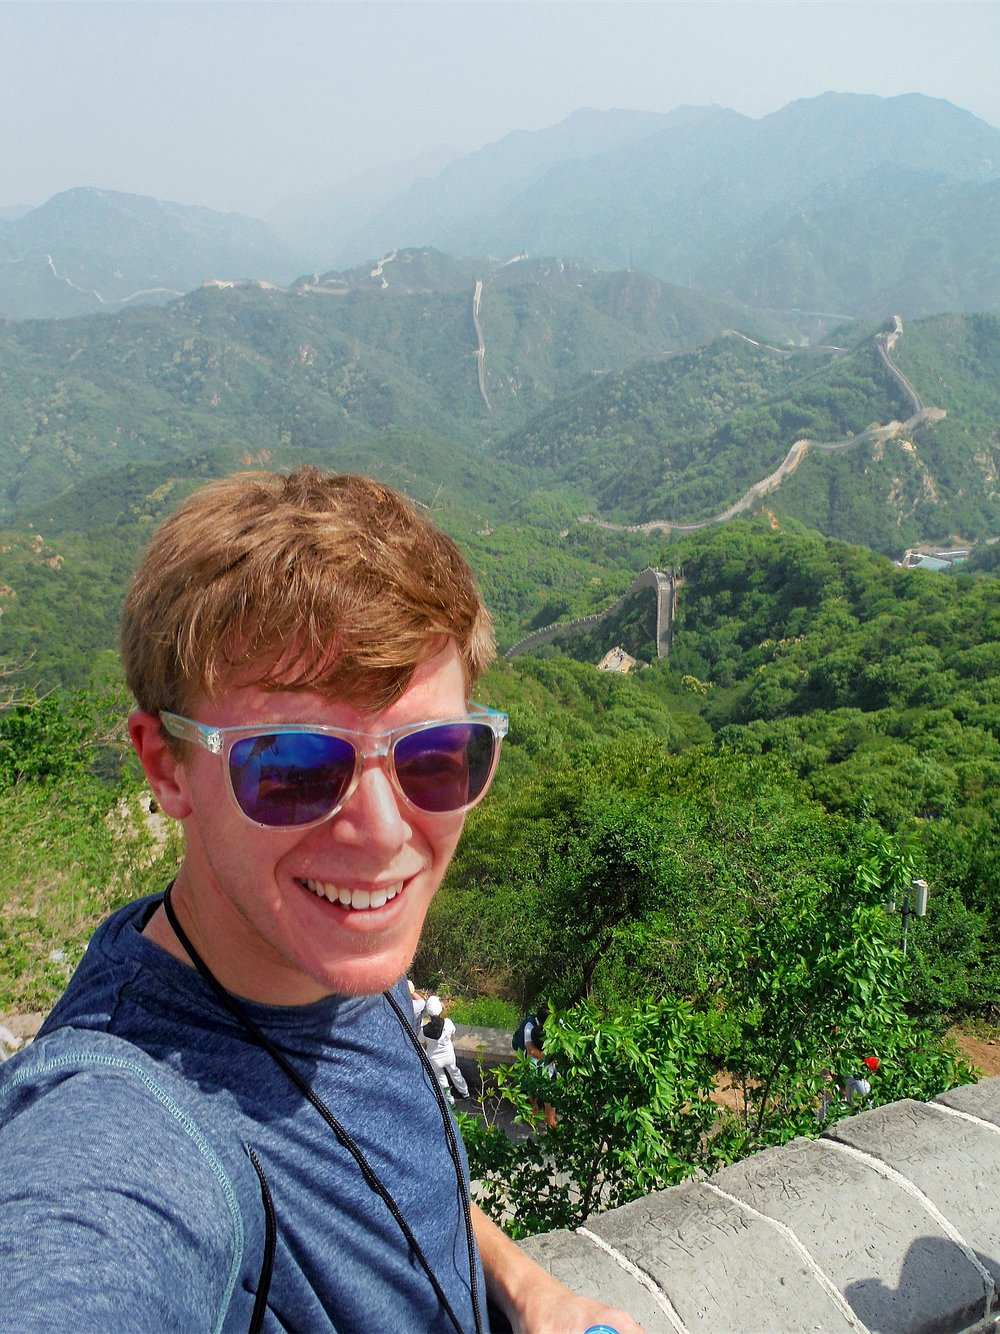 I traveled to China for two weeks in June, 2015. It was an unforgettable experience. I took a lot of pictures, but I think this was the only selfie. Or at least the only good one.